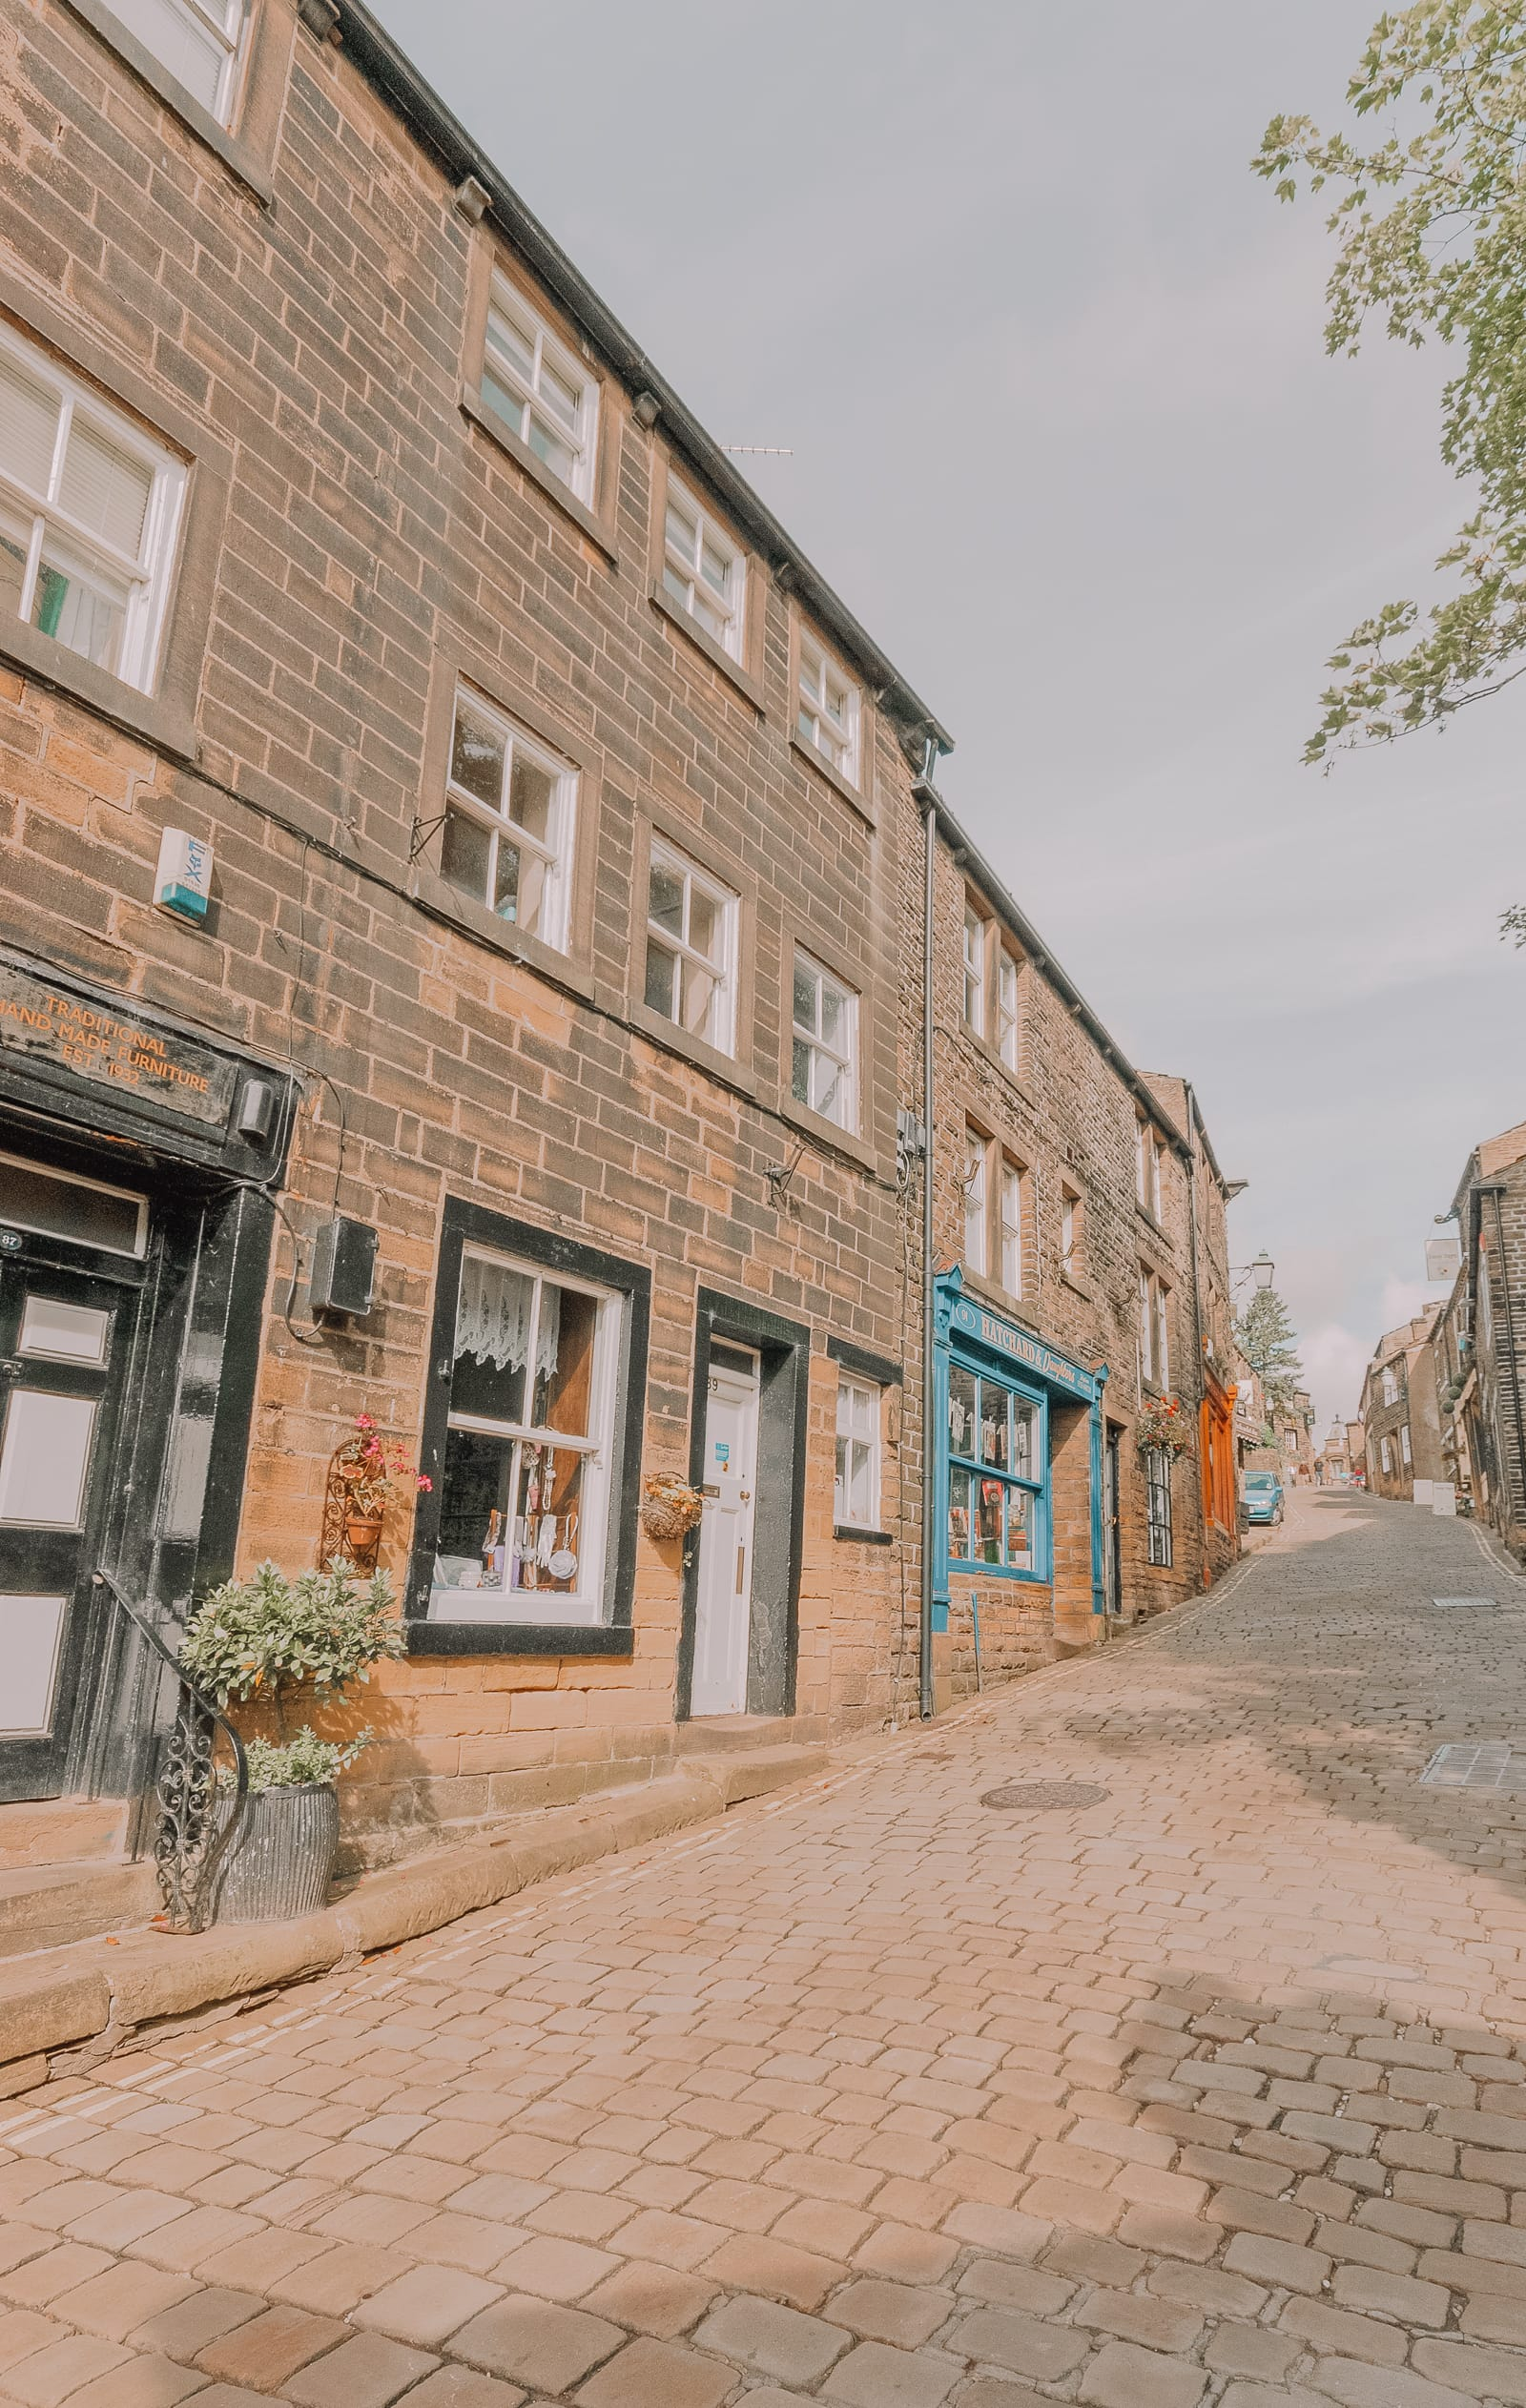 15 Best Places In The North Of England To Visit (12)